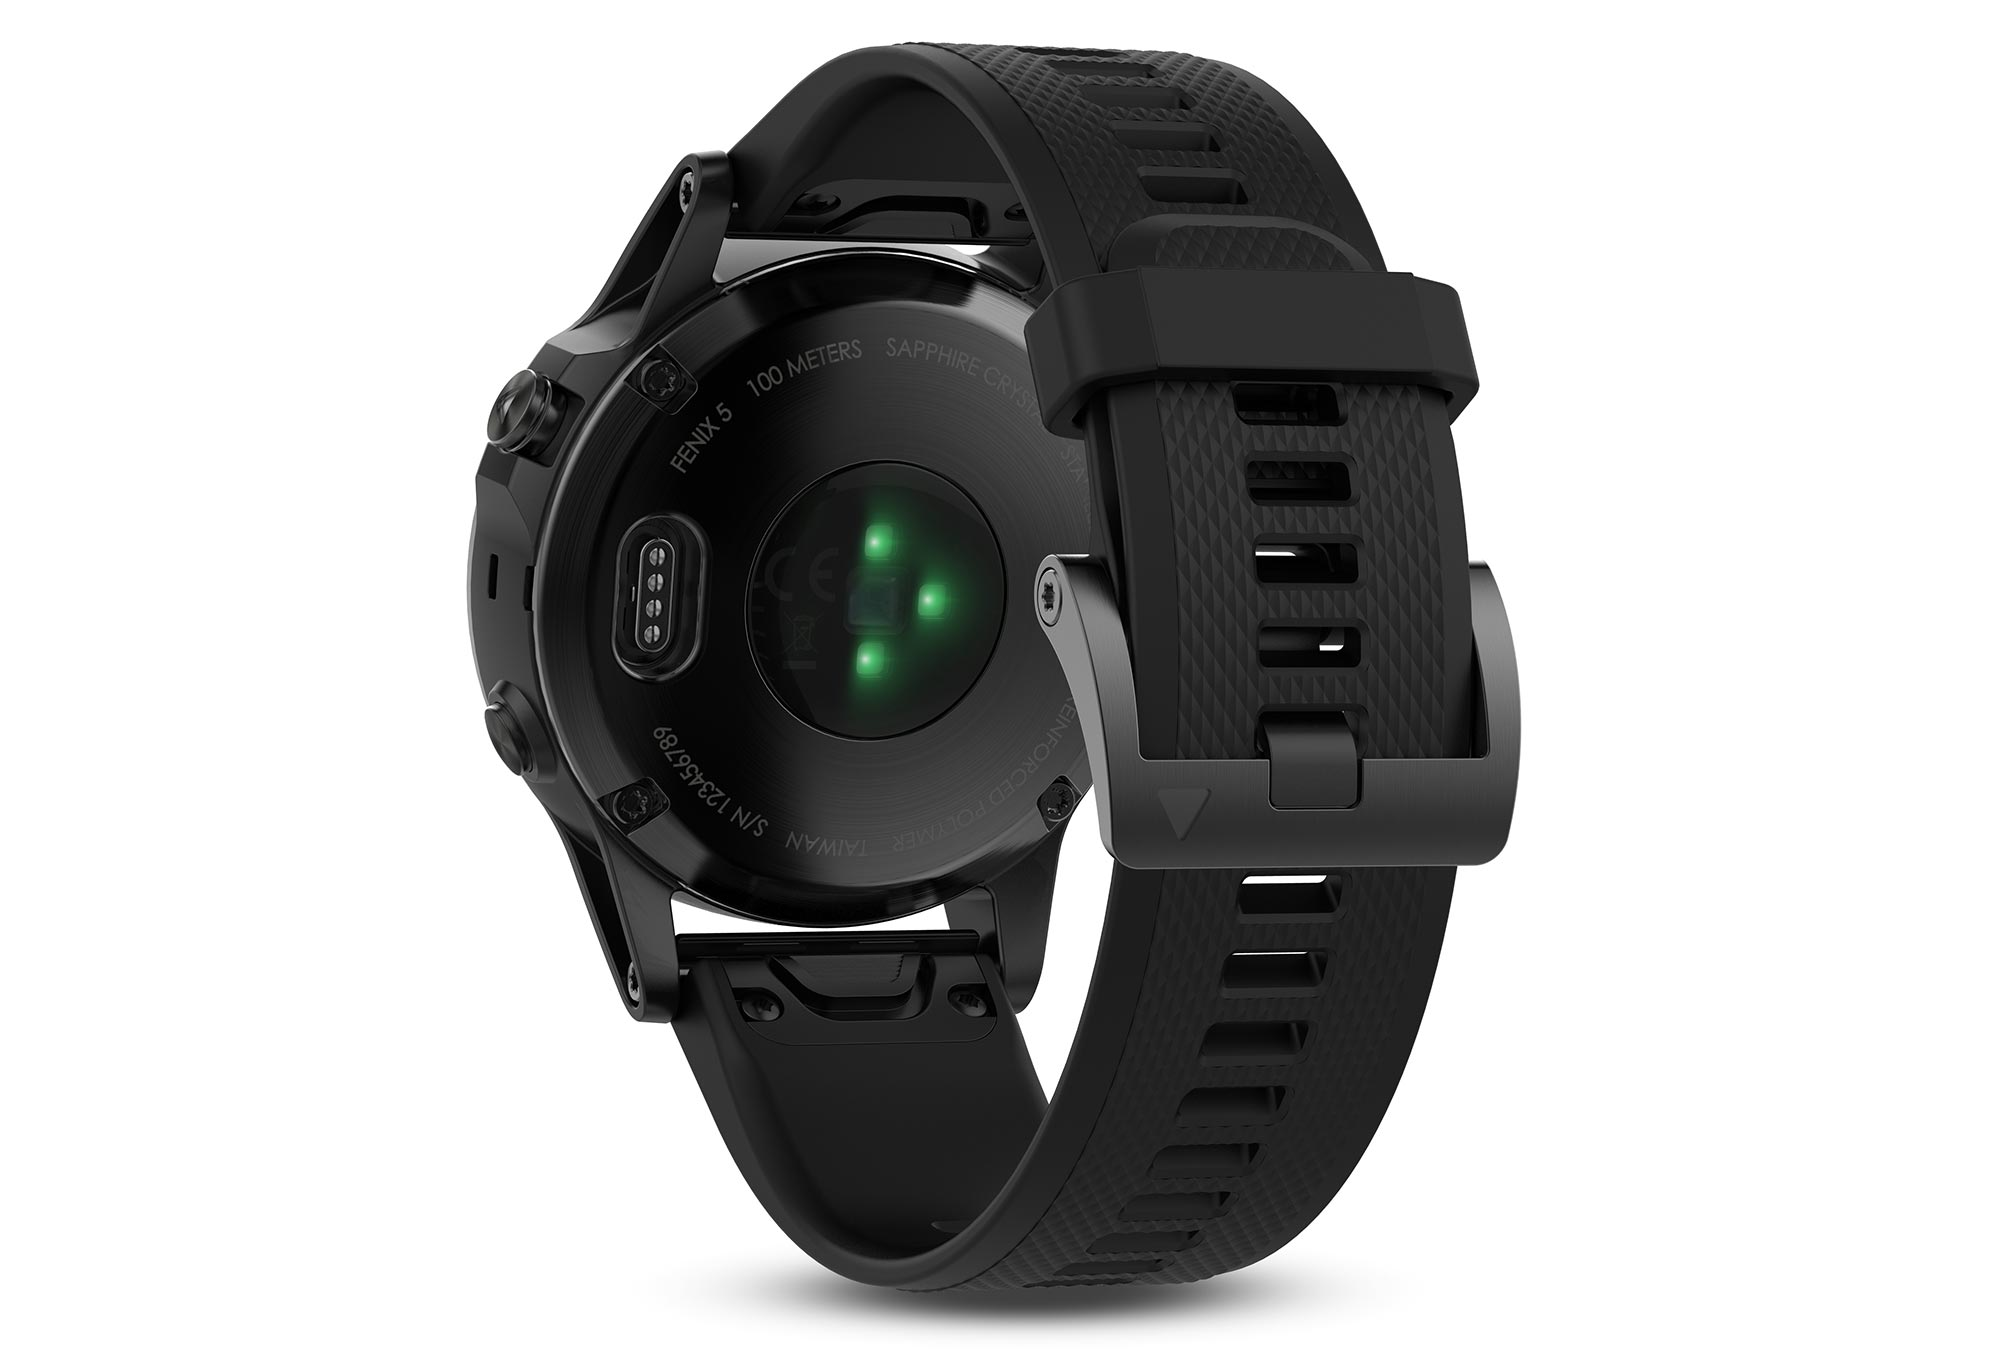 montre gps garmin fenix 5 sapphire performer hrm tri noir. Black Bedroom Furniture Sets. Home Design Ideas